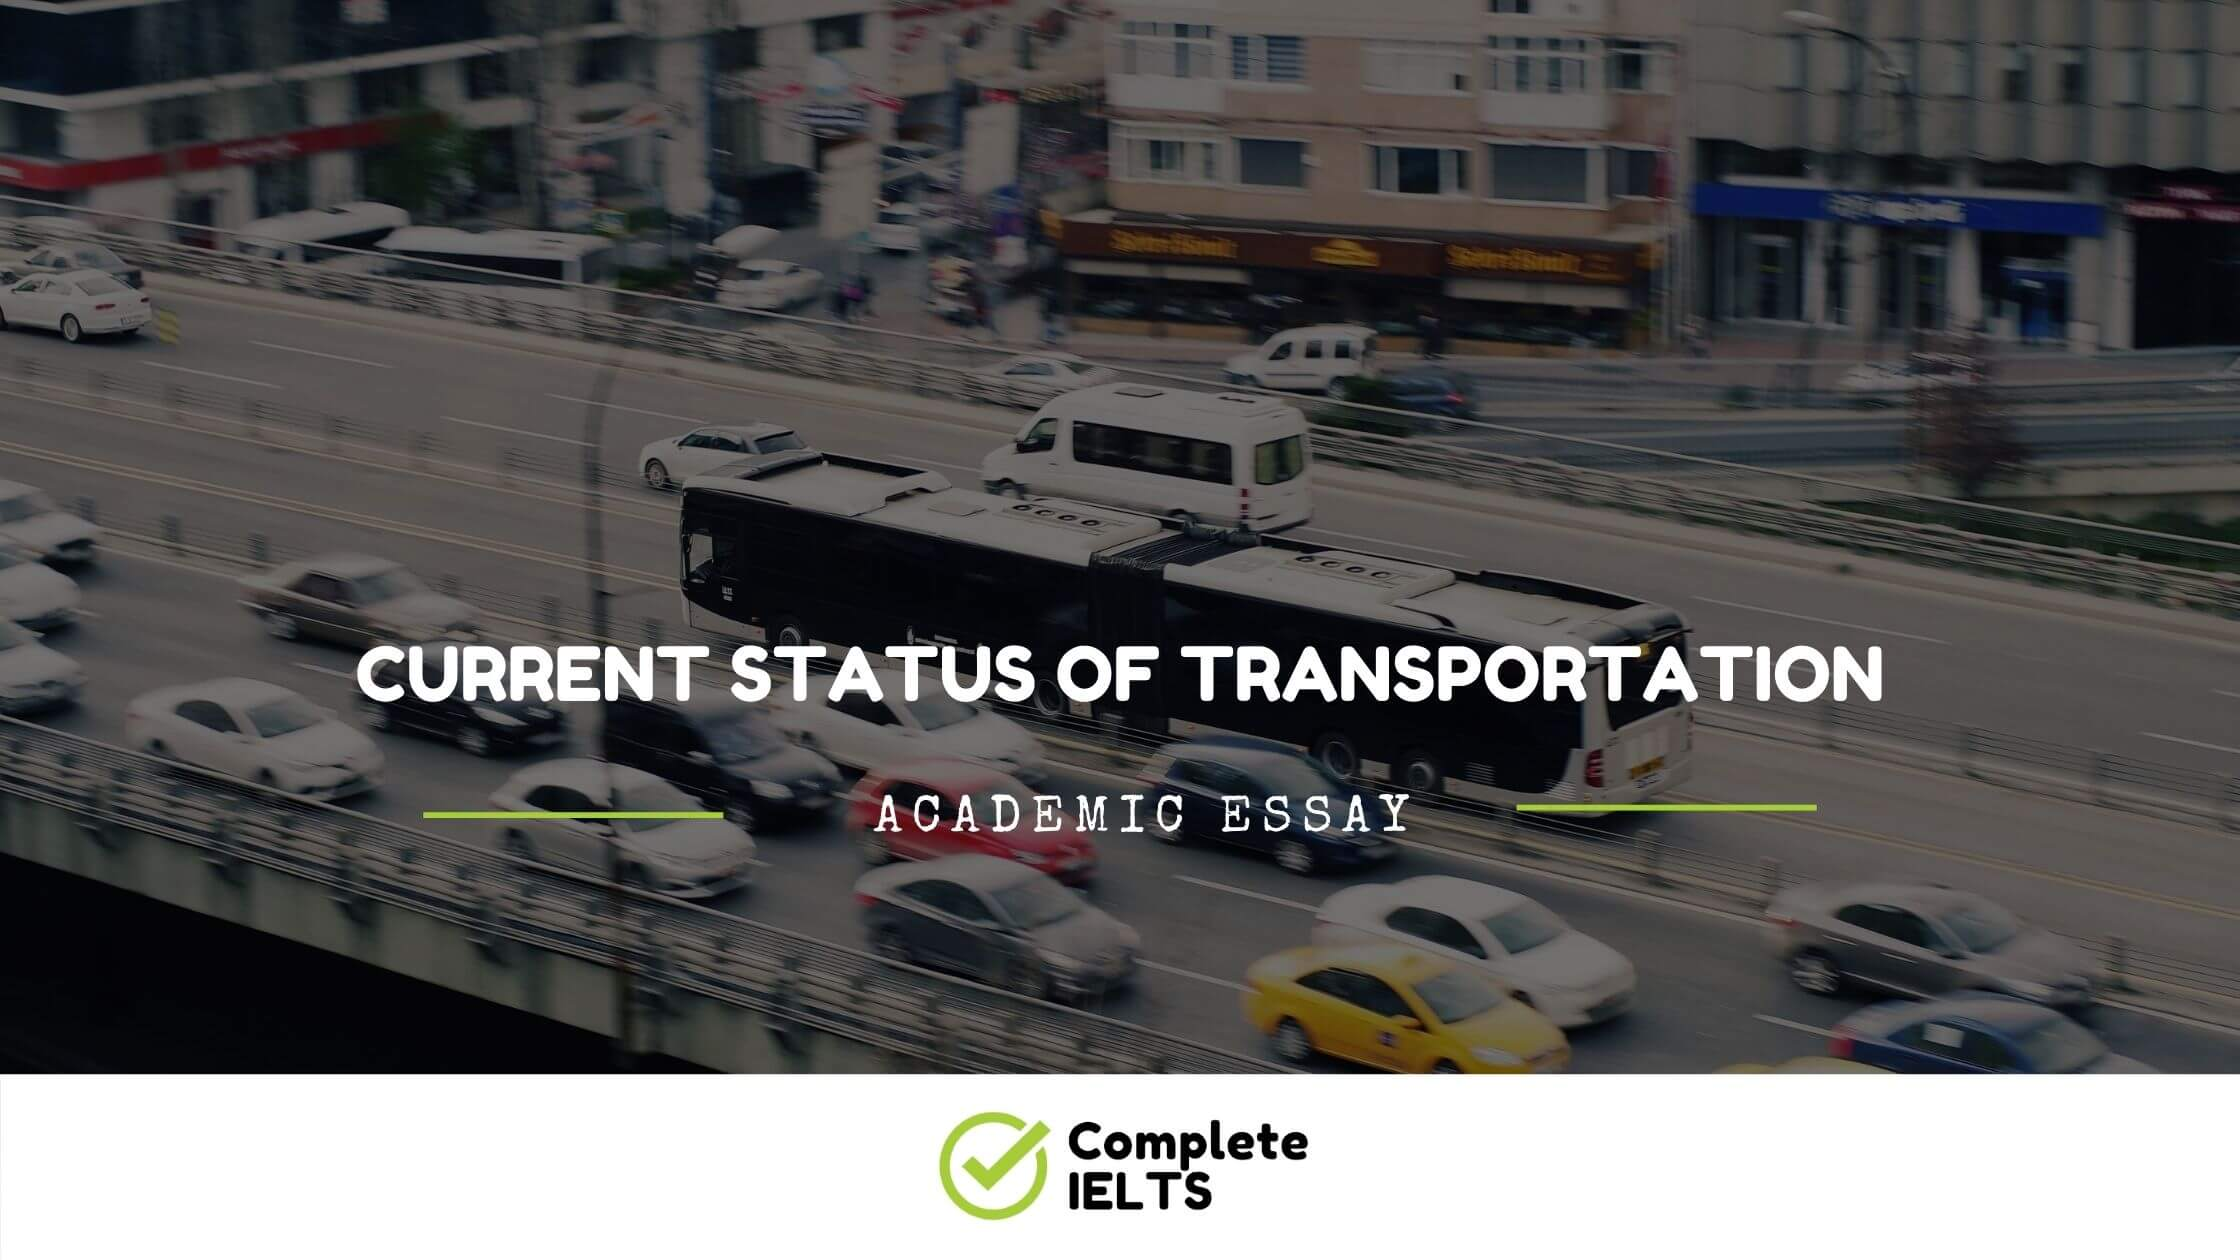 Essay on Current Status Of Transportation